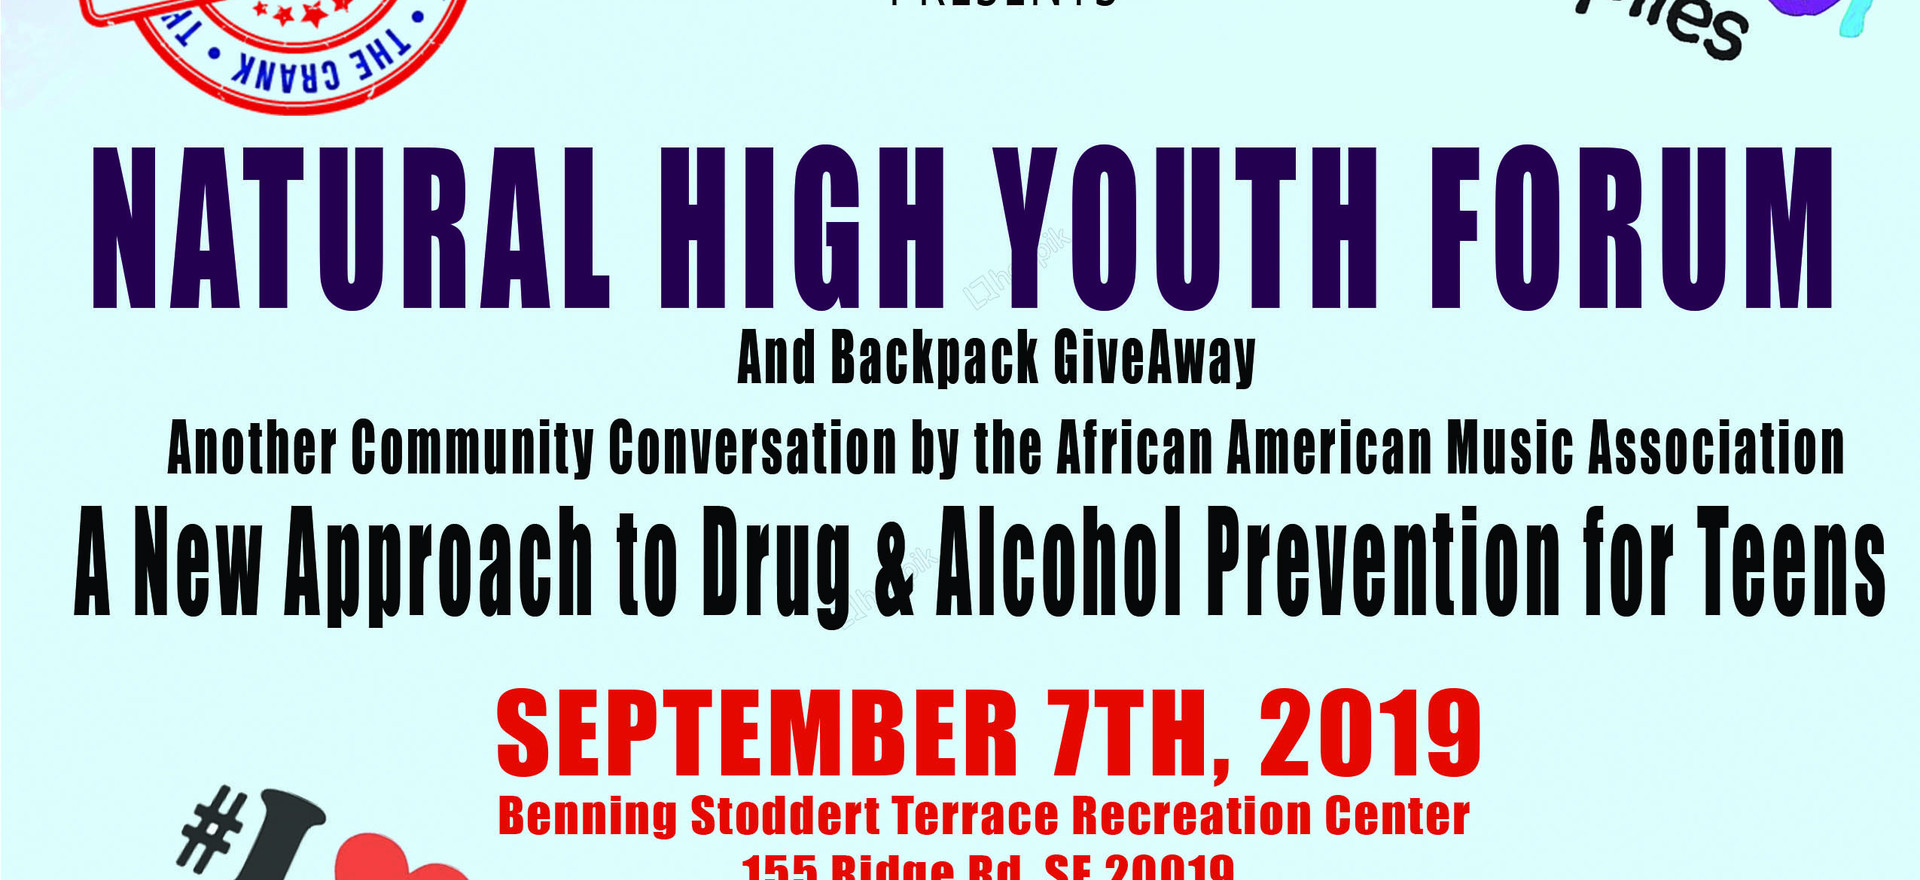 natral high YOUTH FORUM FINAL 9719.jpg